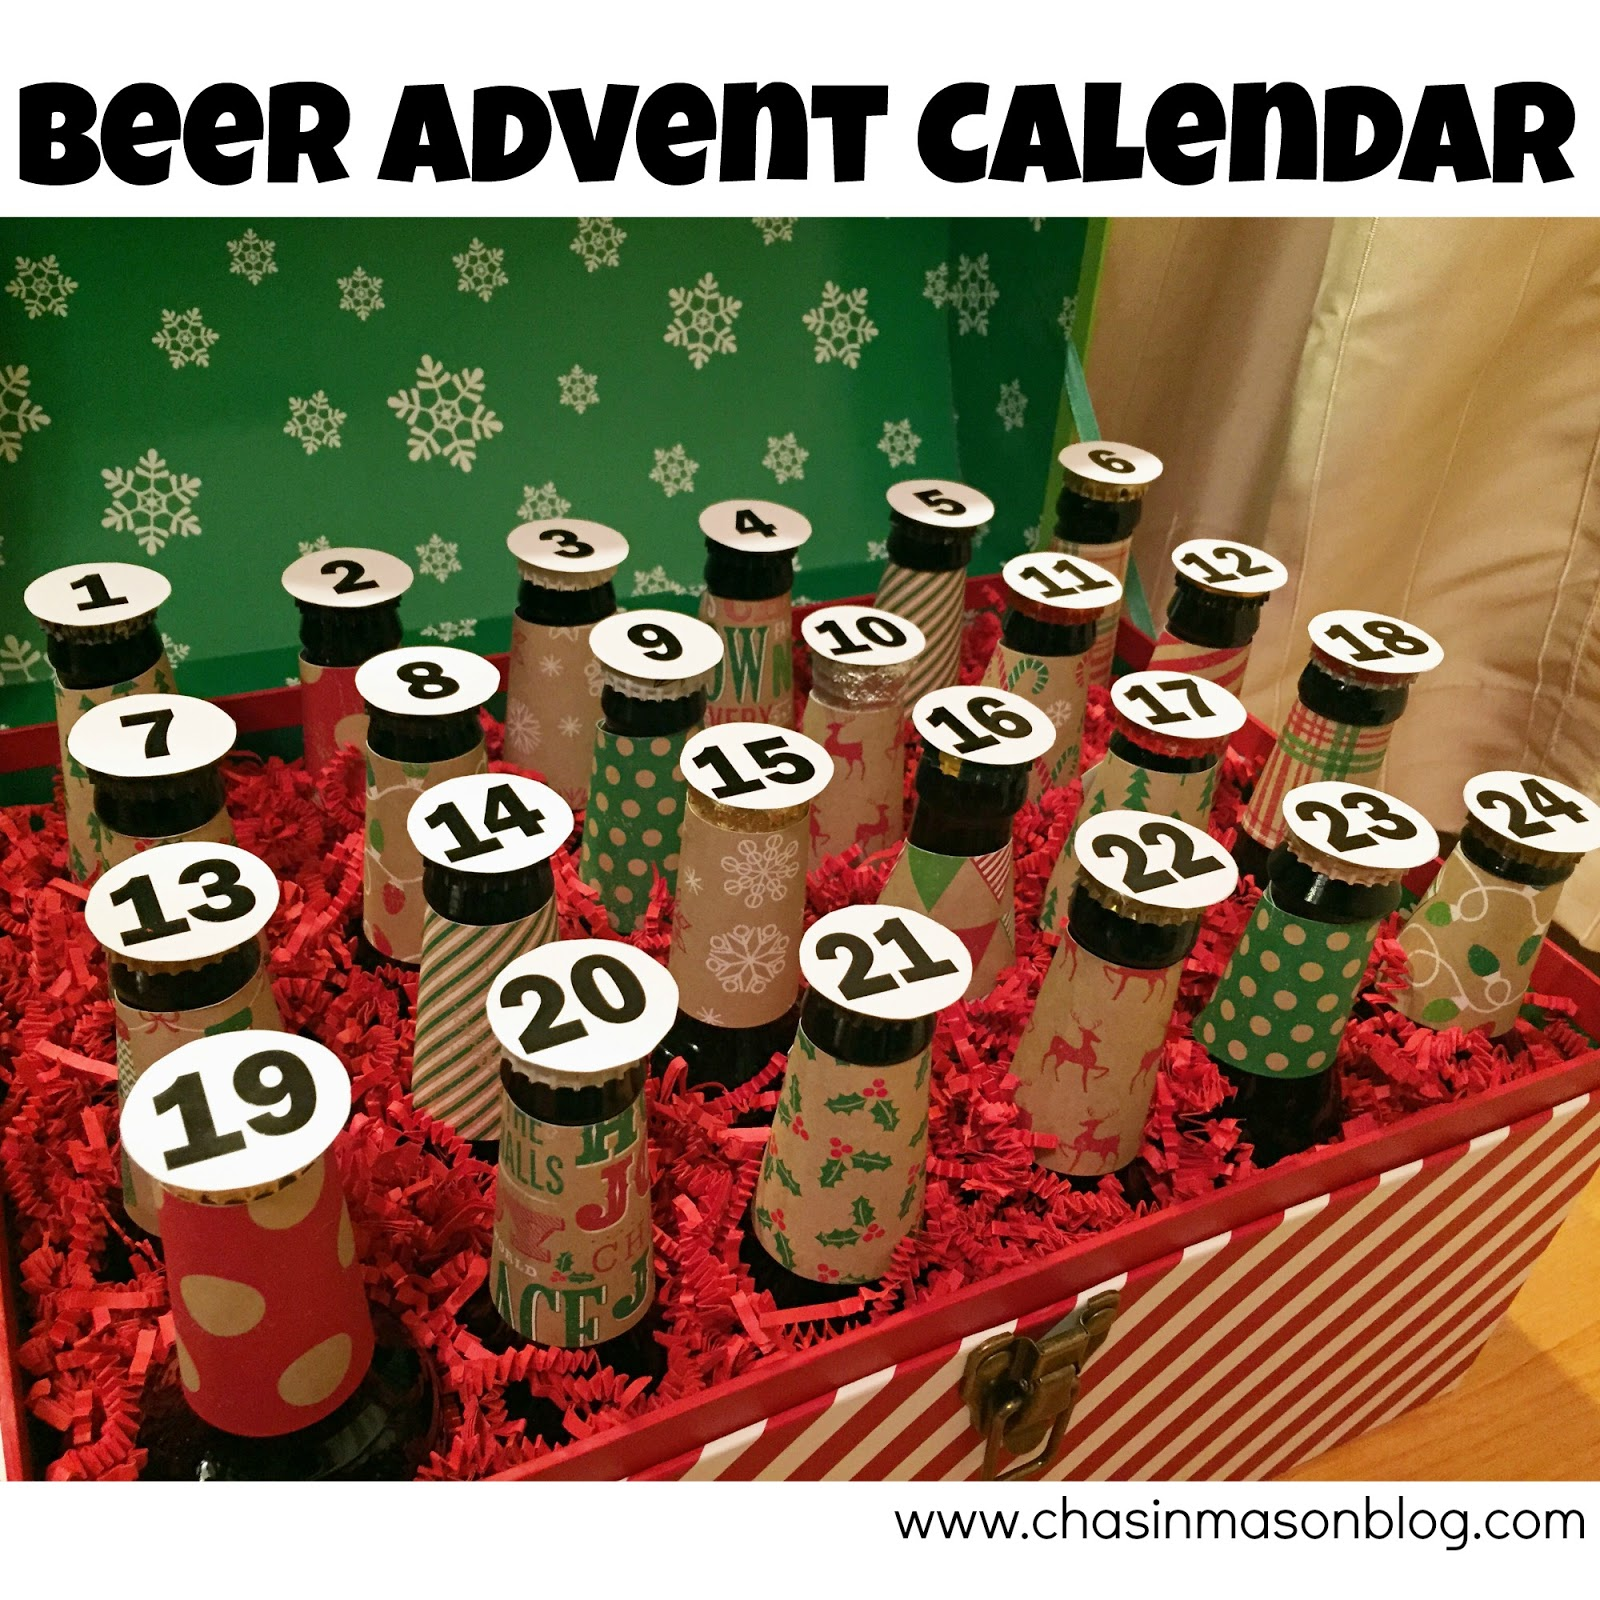 Diy Calendar For Boyfriend : Chasin mason gifts for the husband diy beer advent